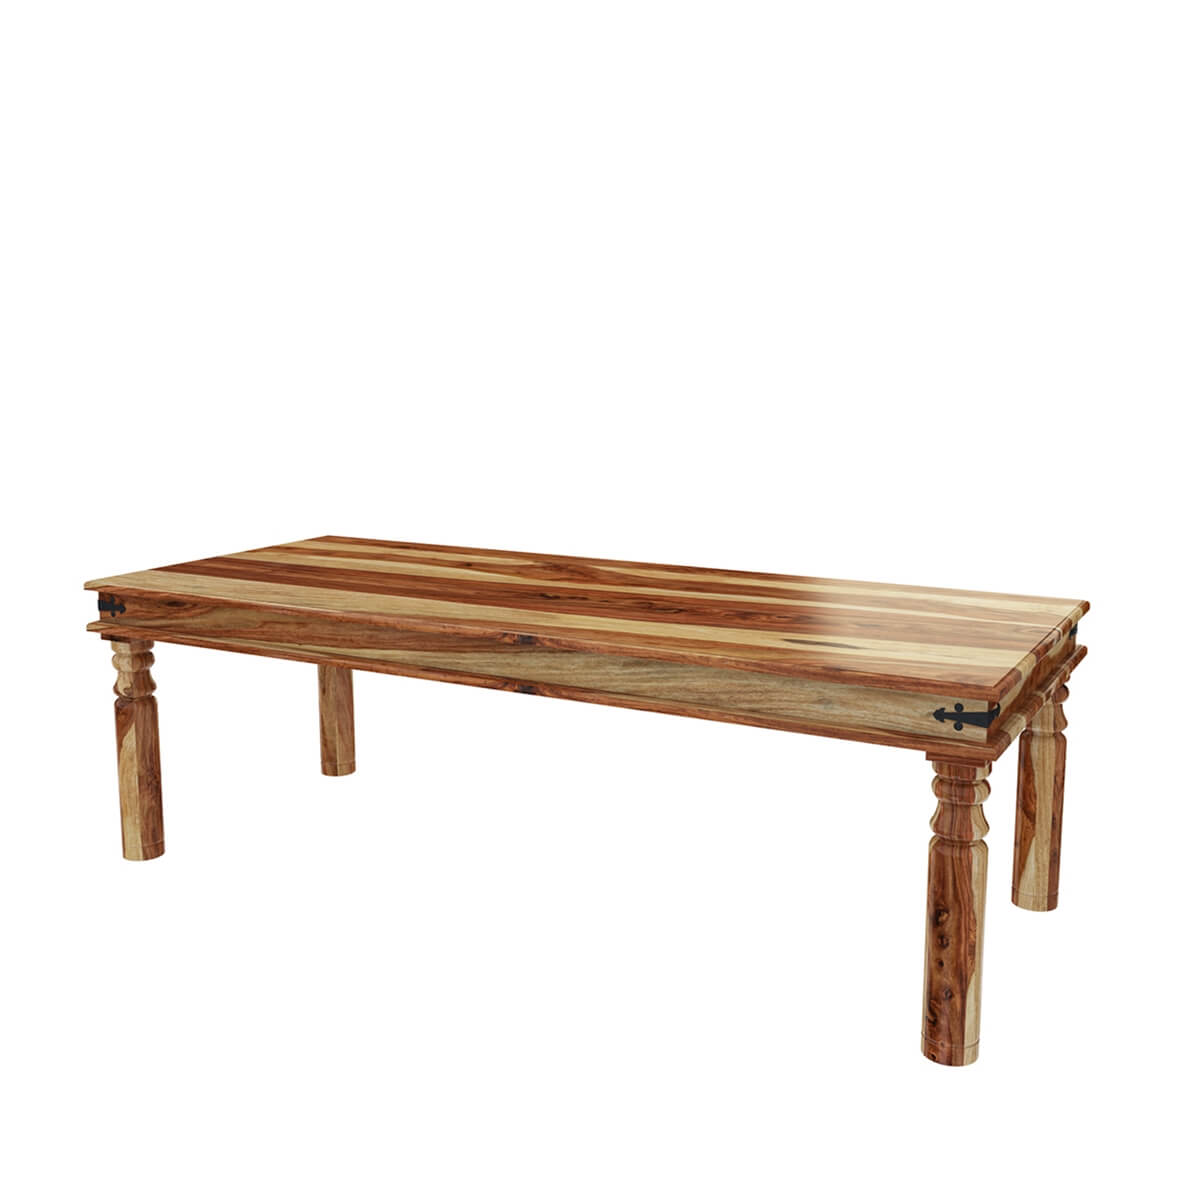 Dallas Ranch Large Solid Wood Rustic Dining Table